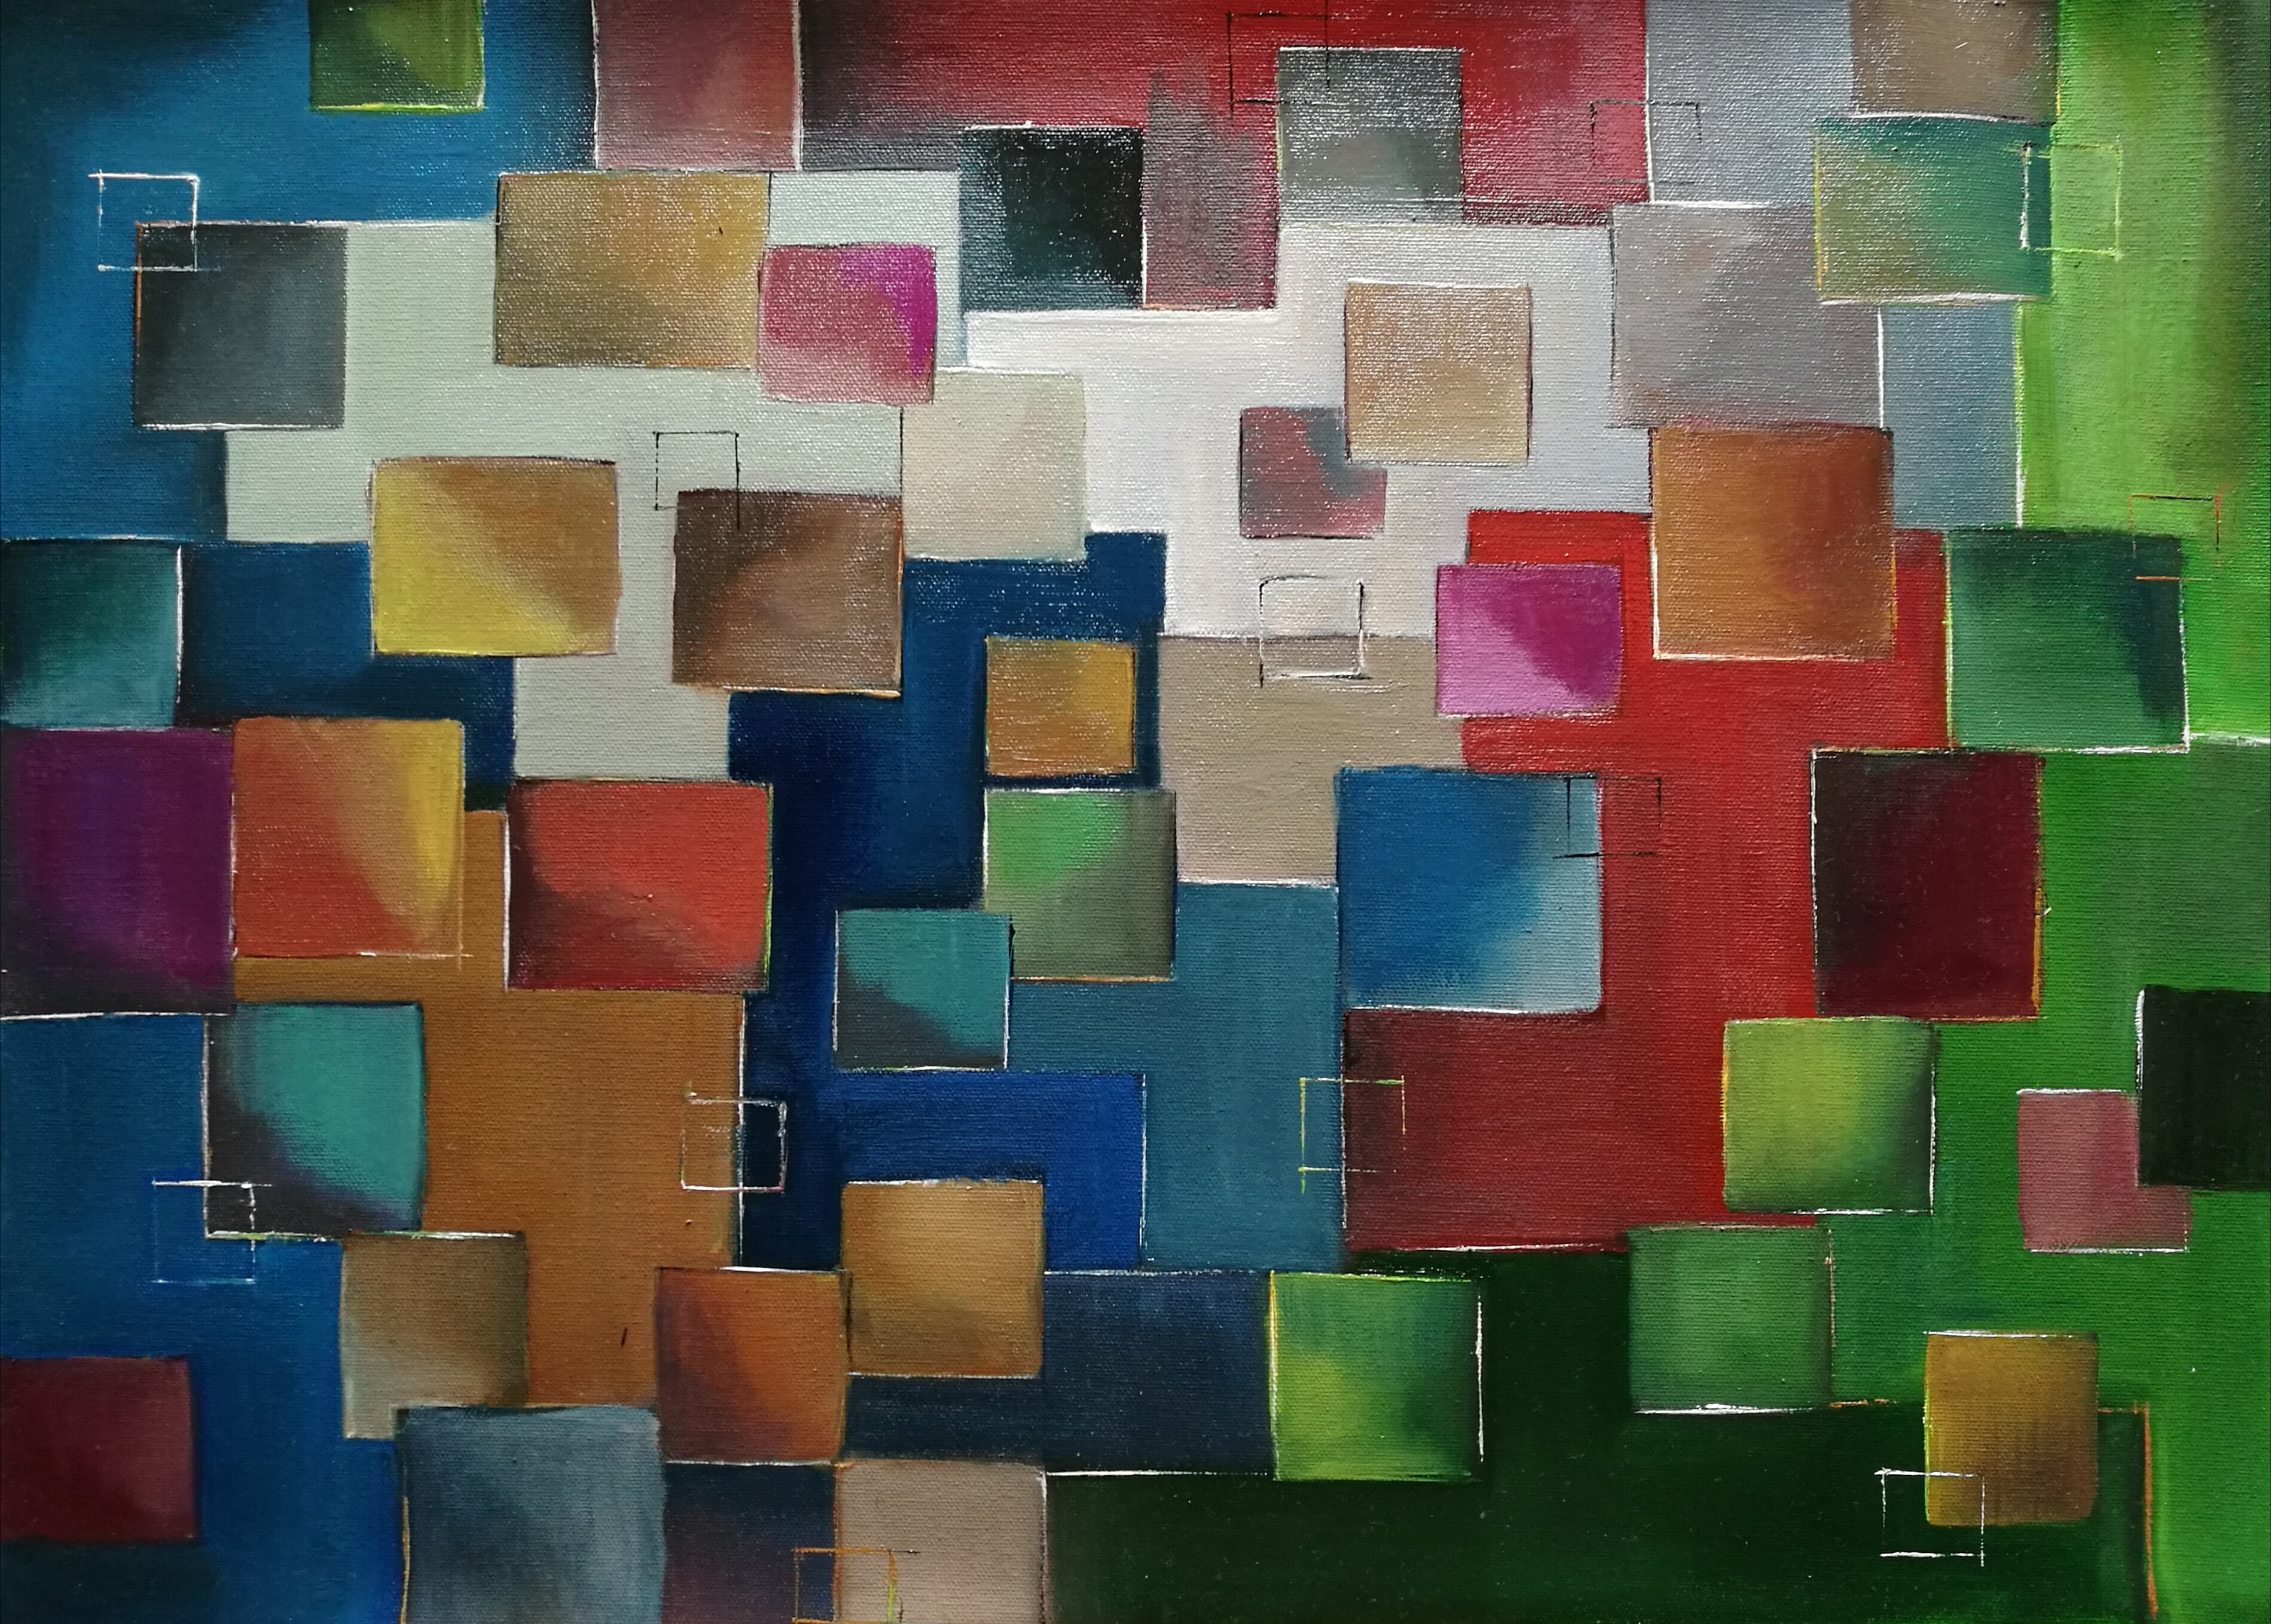 Contribution Of Various Art Movements To The Development Of Abstract Art